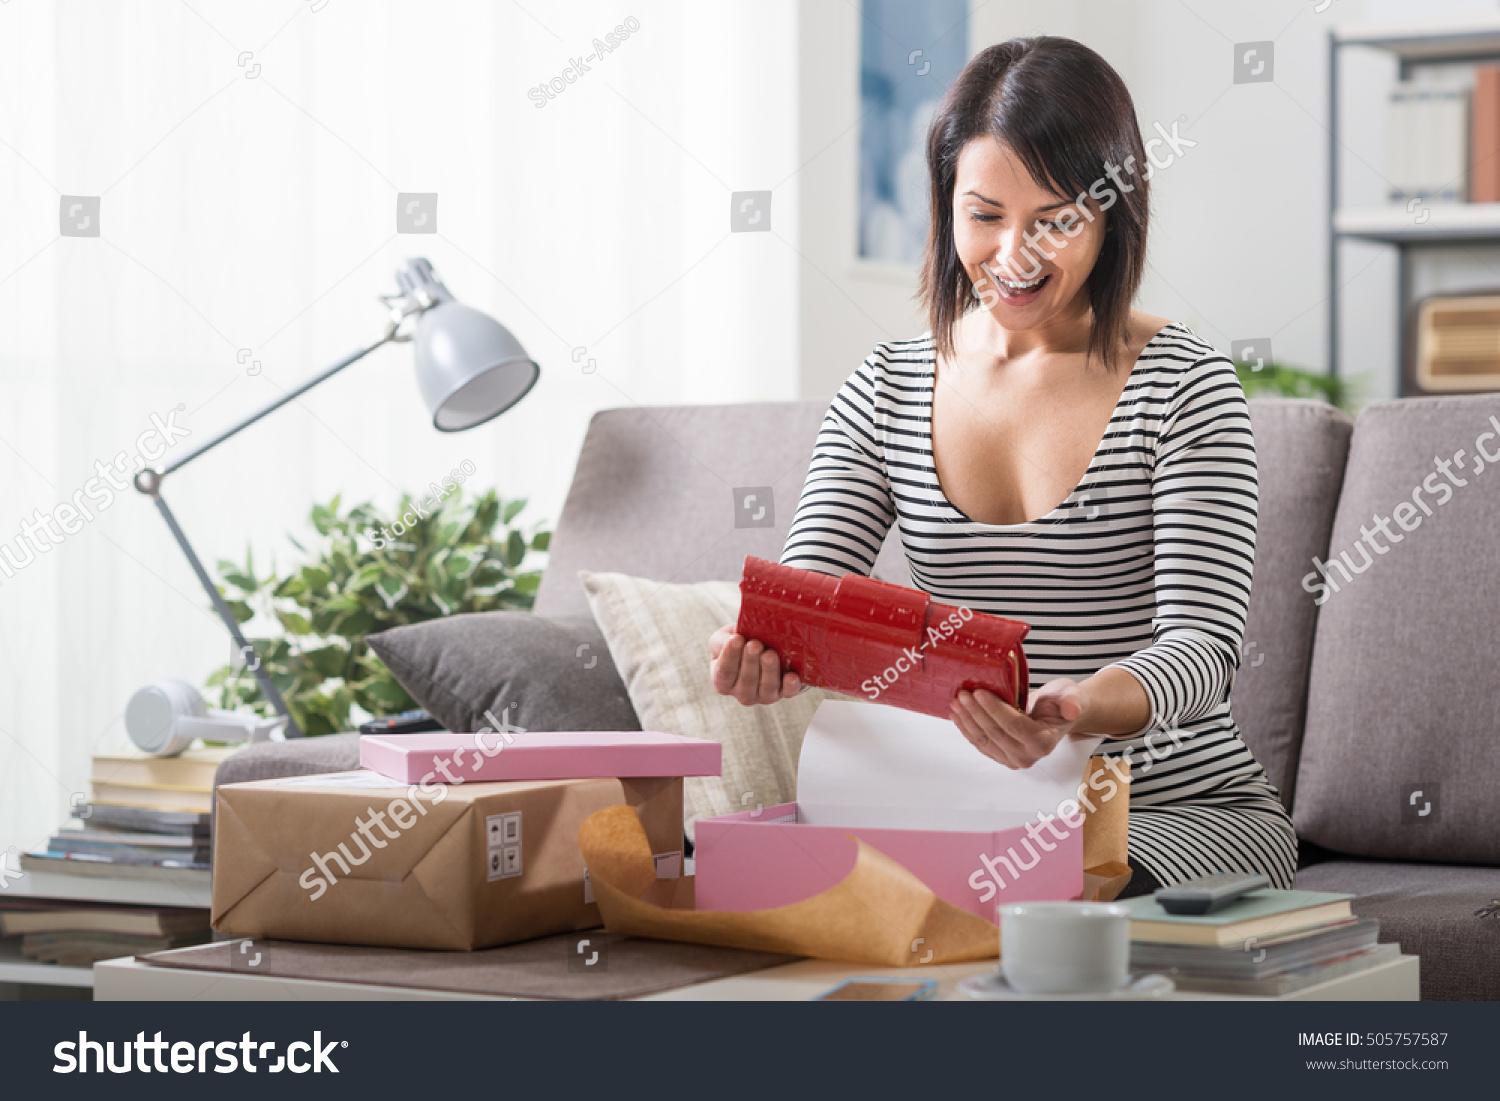 Happy woman unboxing a parcel containing a fashion bag online shopping delivery and customer satisfaction concept